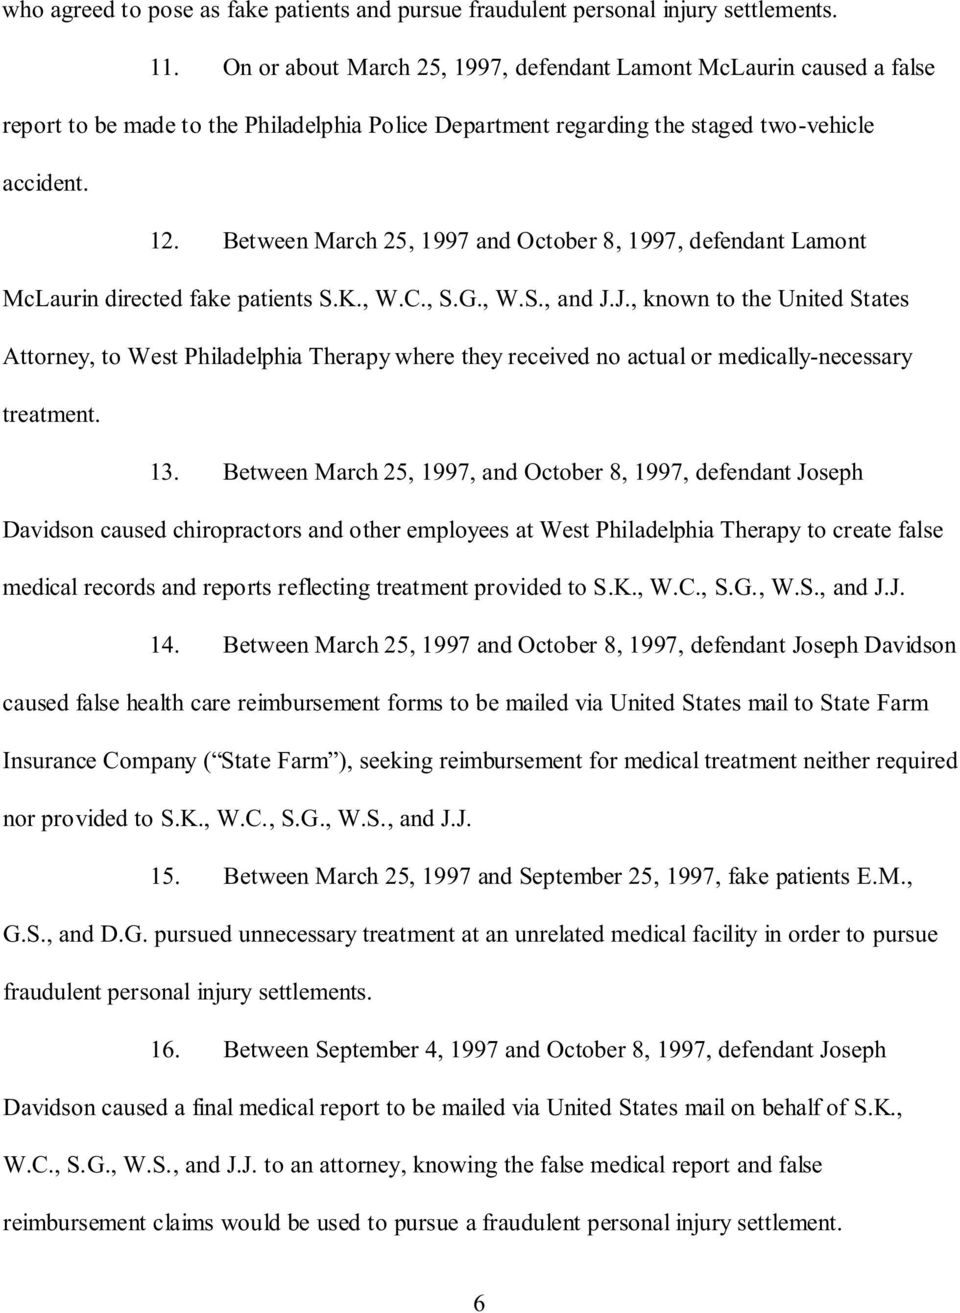 Between March 25, 1997 and October 8, 1997, defendant Lamont McLaurin directed fake patients S.K., W.C., S.G., W.S., and J.